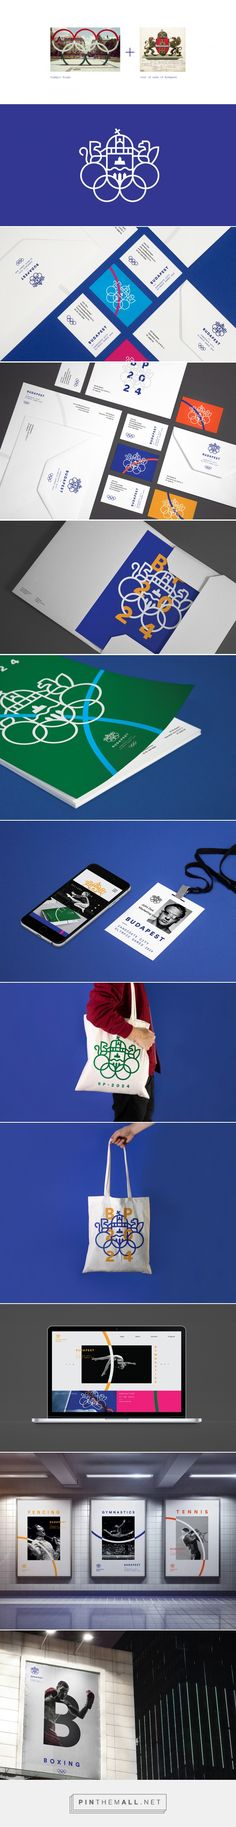 Budapest - Candidate City Olympic Games 2024 on Behance - created via…